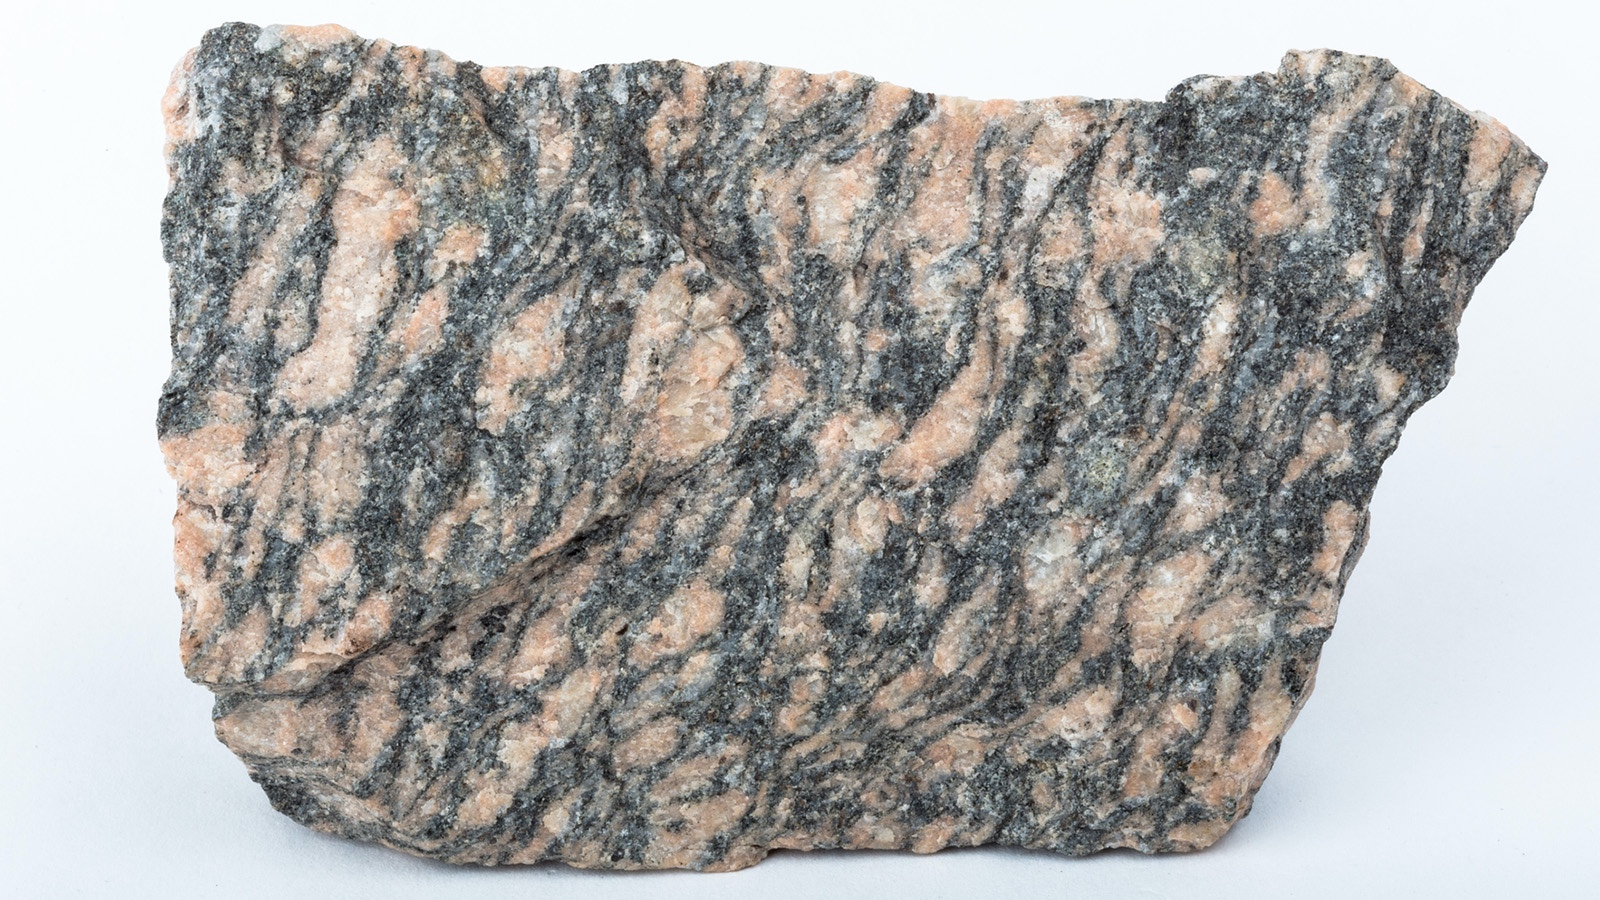 Foliated Metamorphic gneiss rock